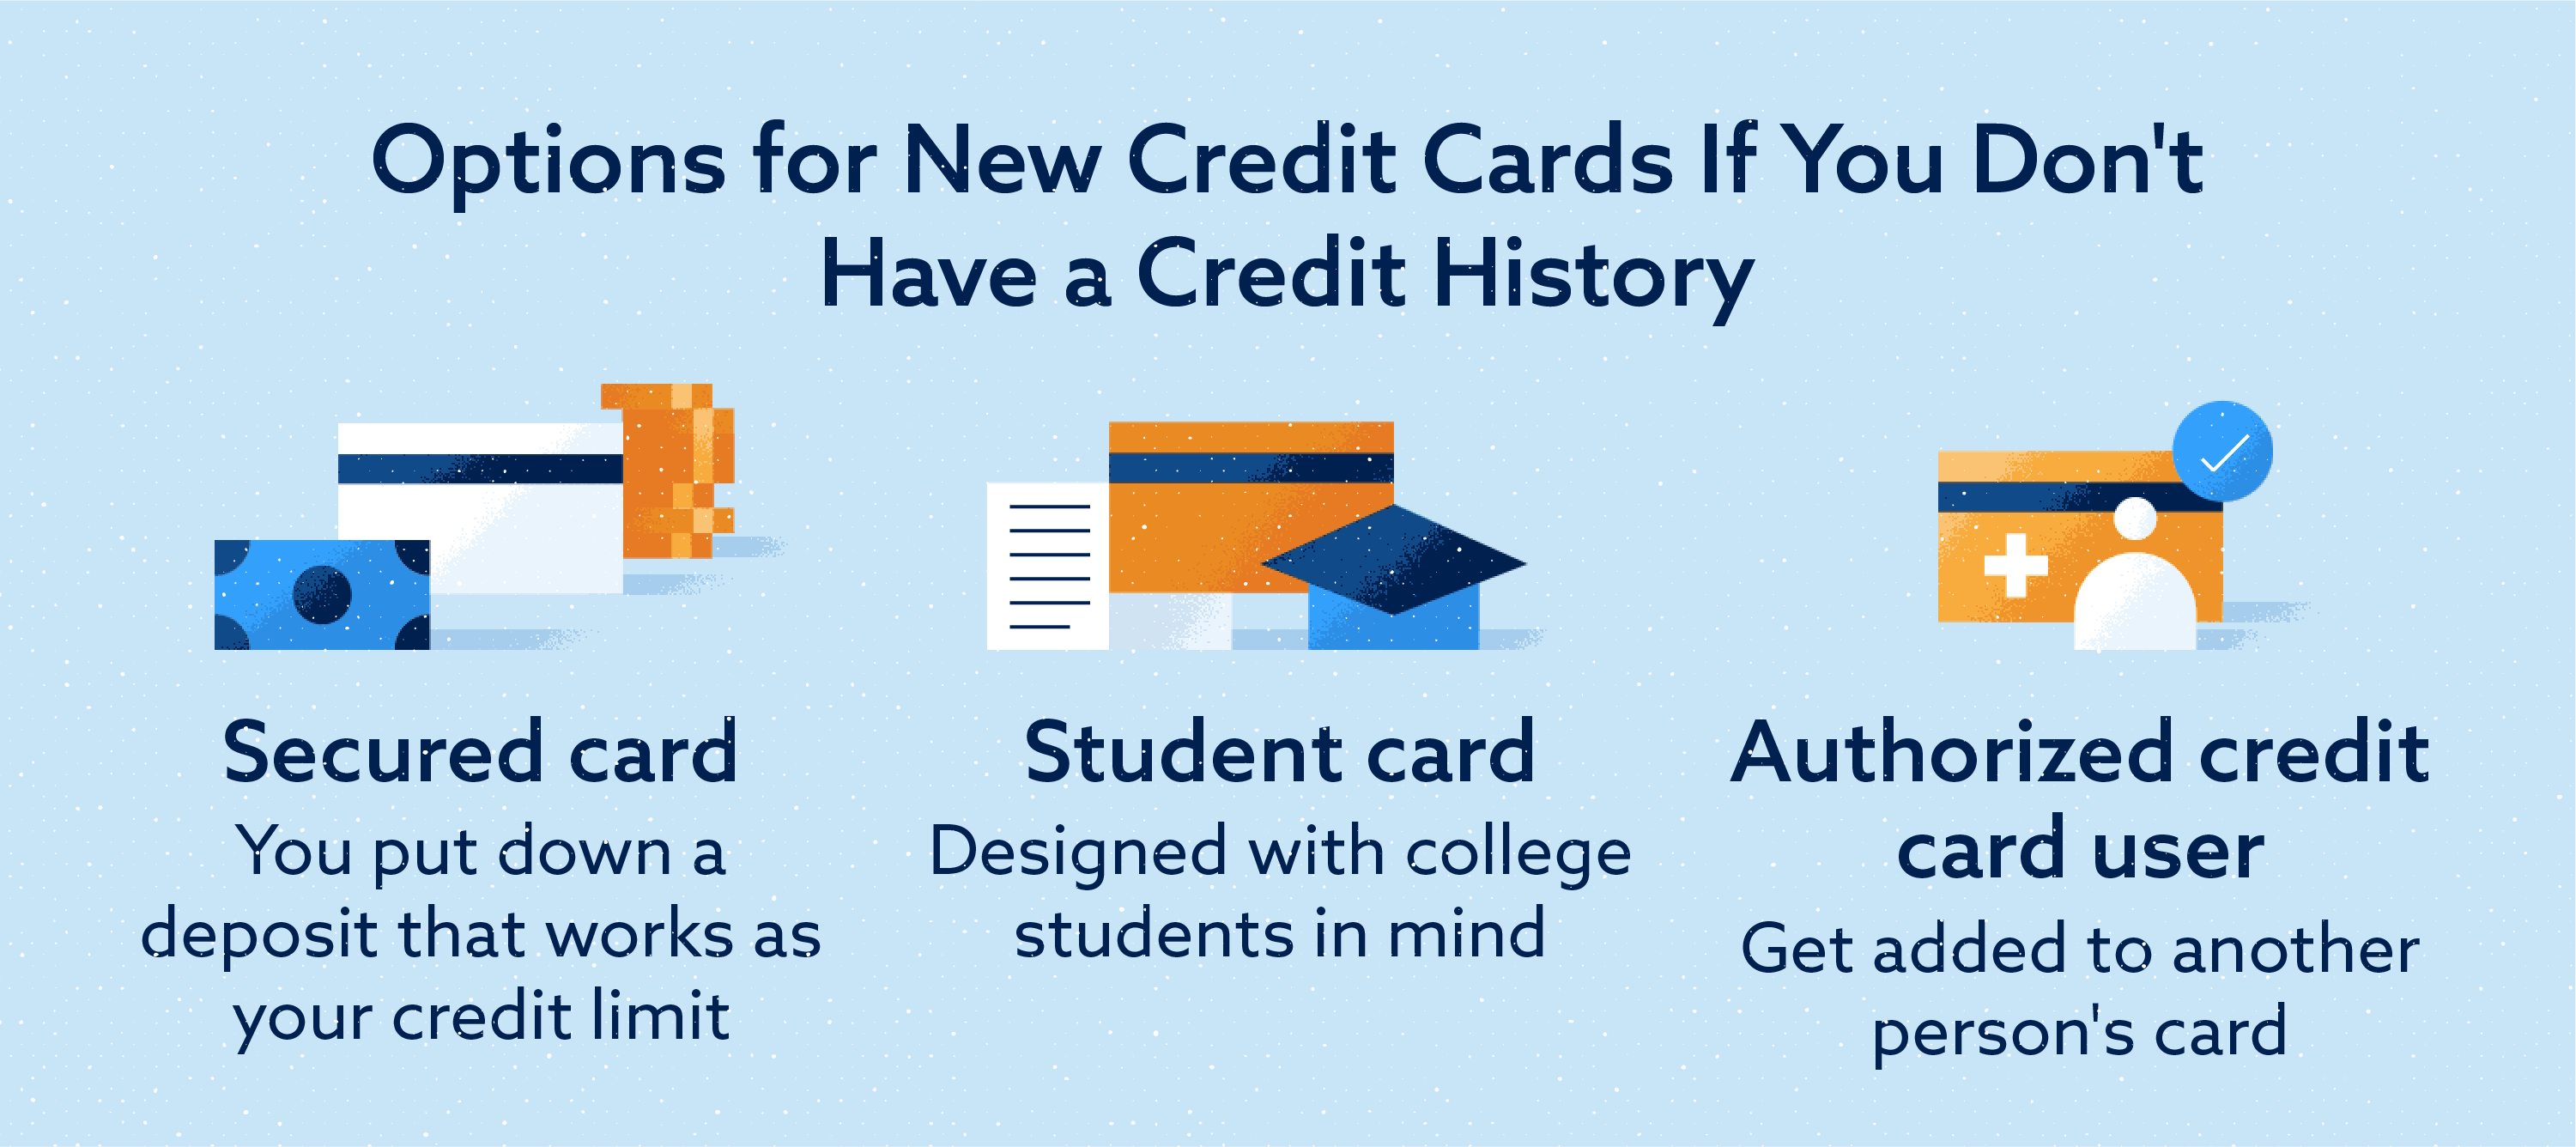 Options when applying for your first credit card Image